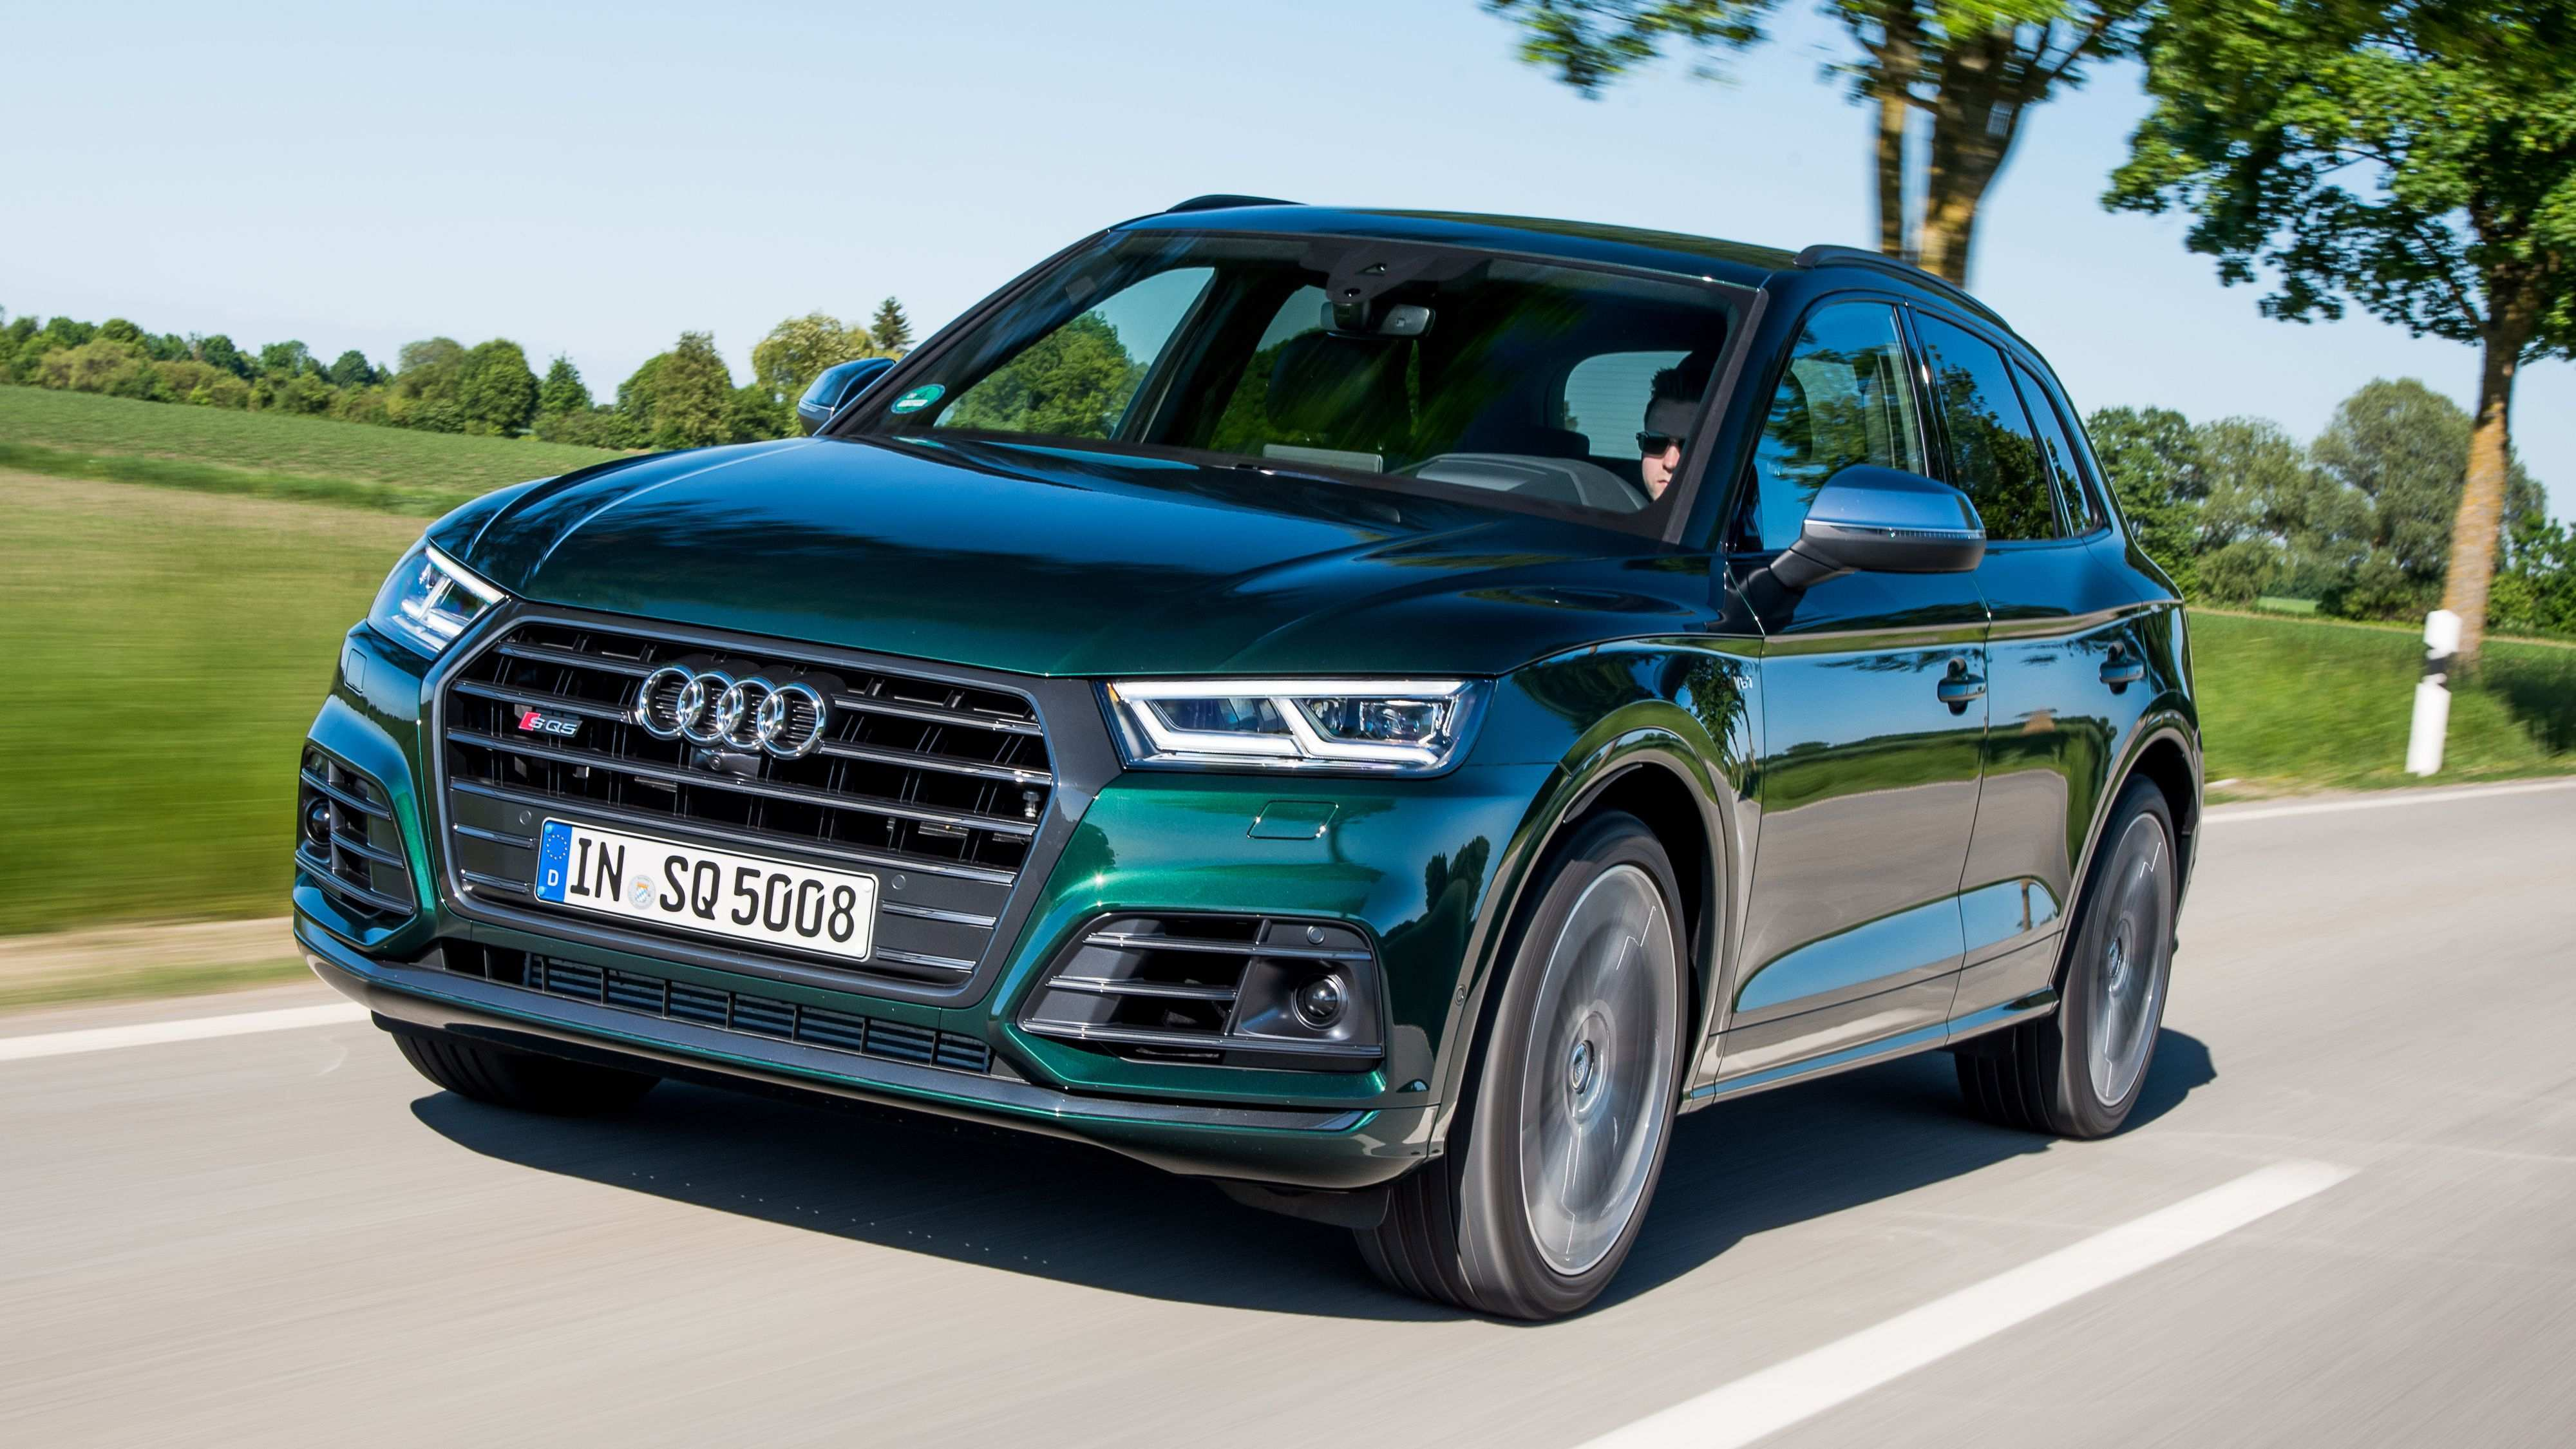 71 Great Audi Sq5 2019 Order Guide New Release Engine for Audi Sq5 2019 Order Guide New Release